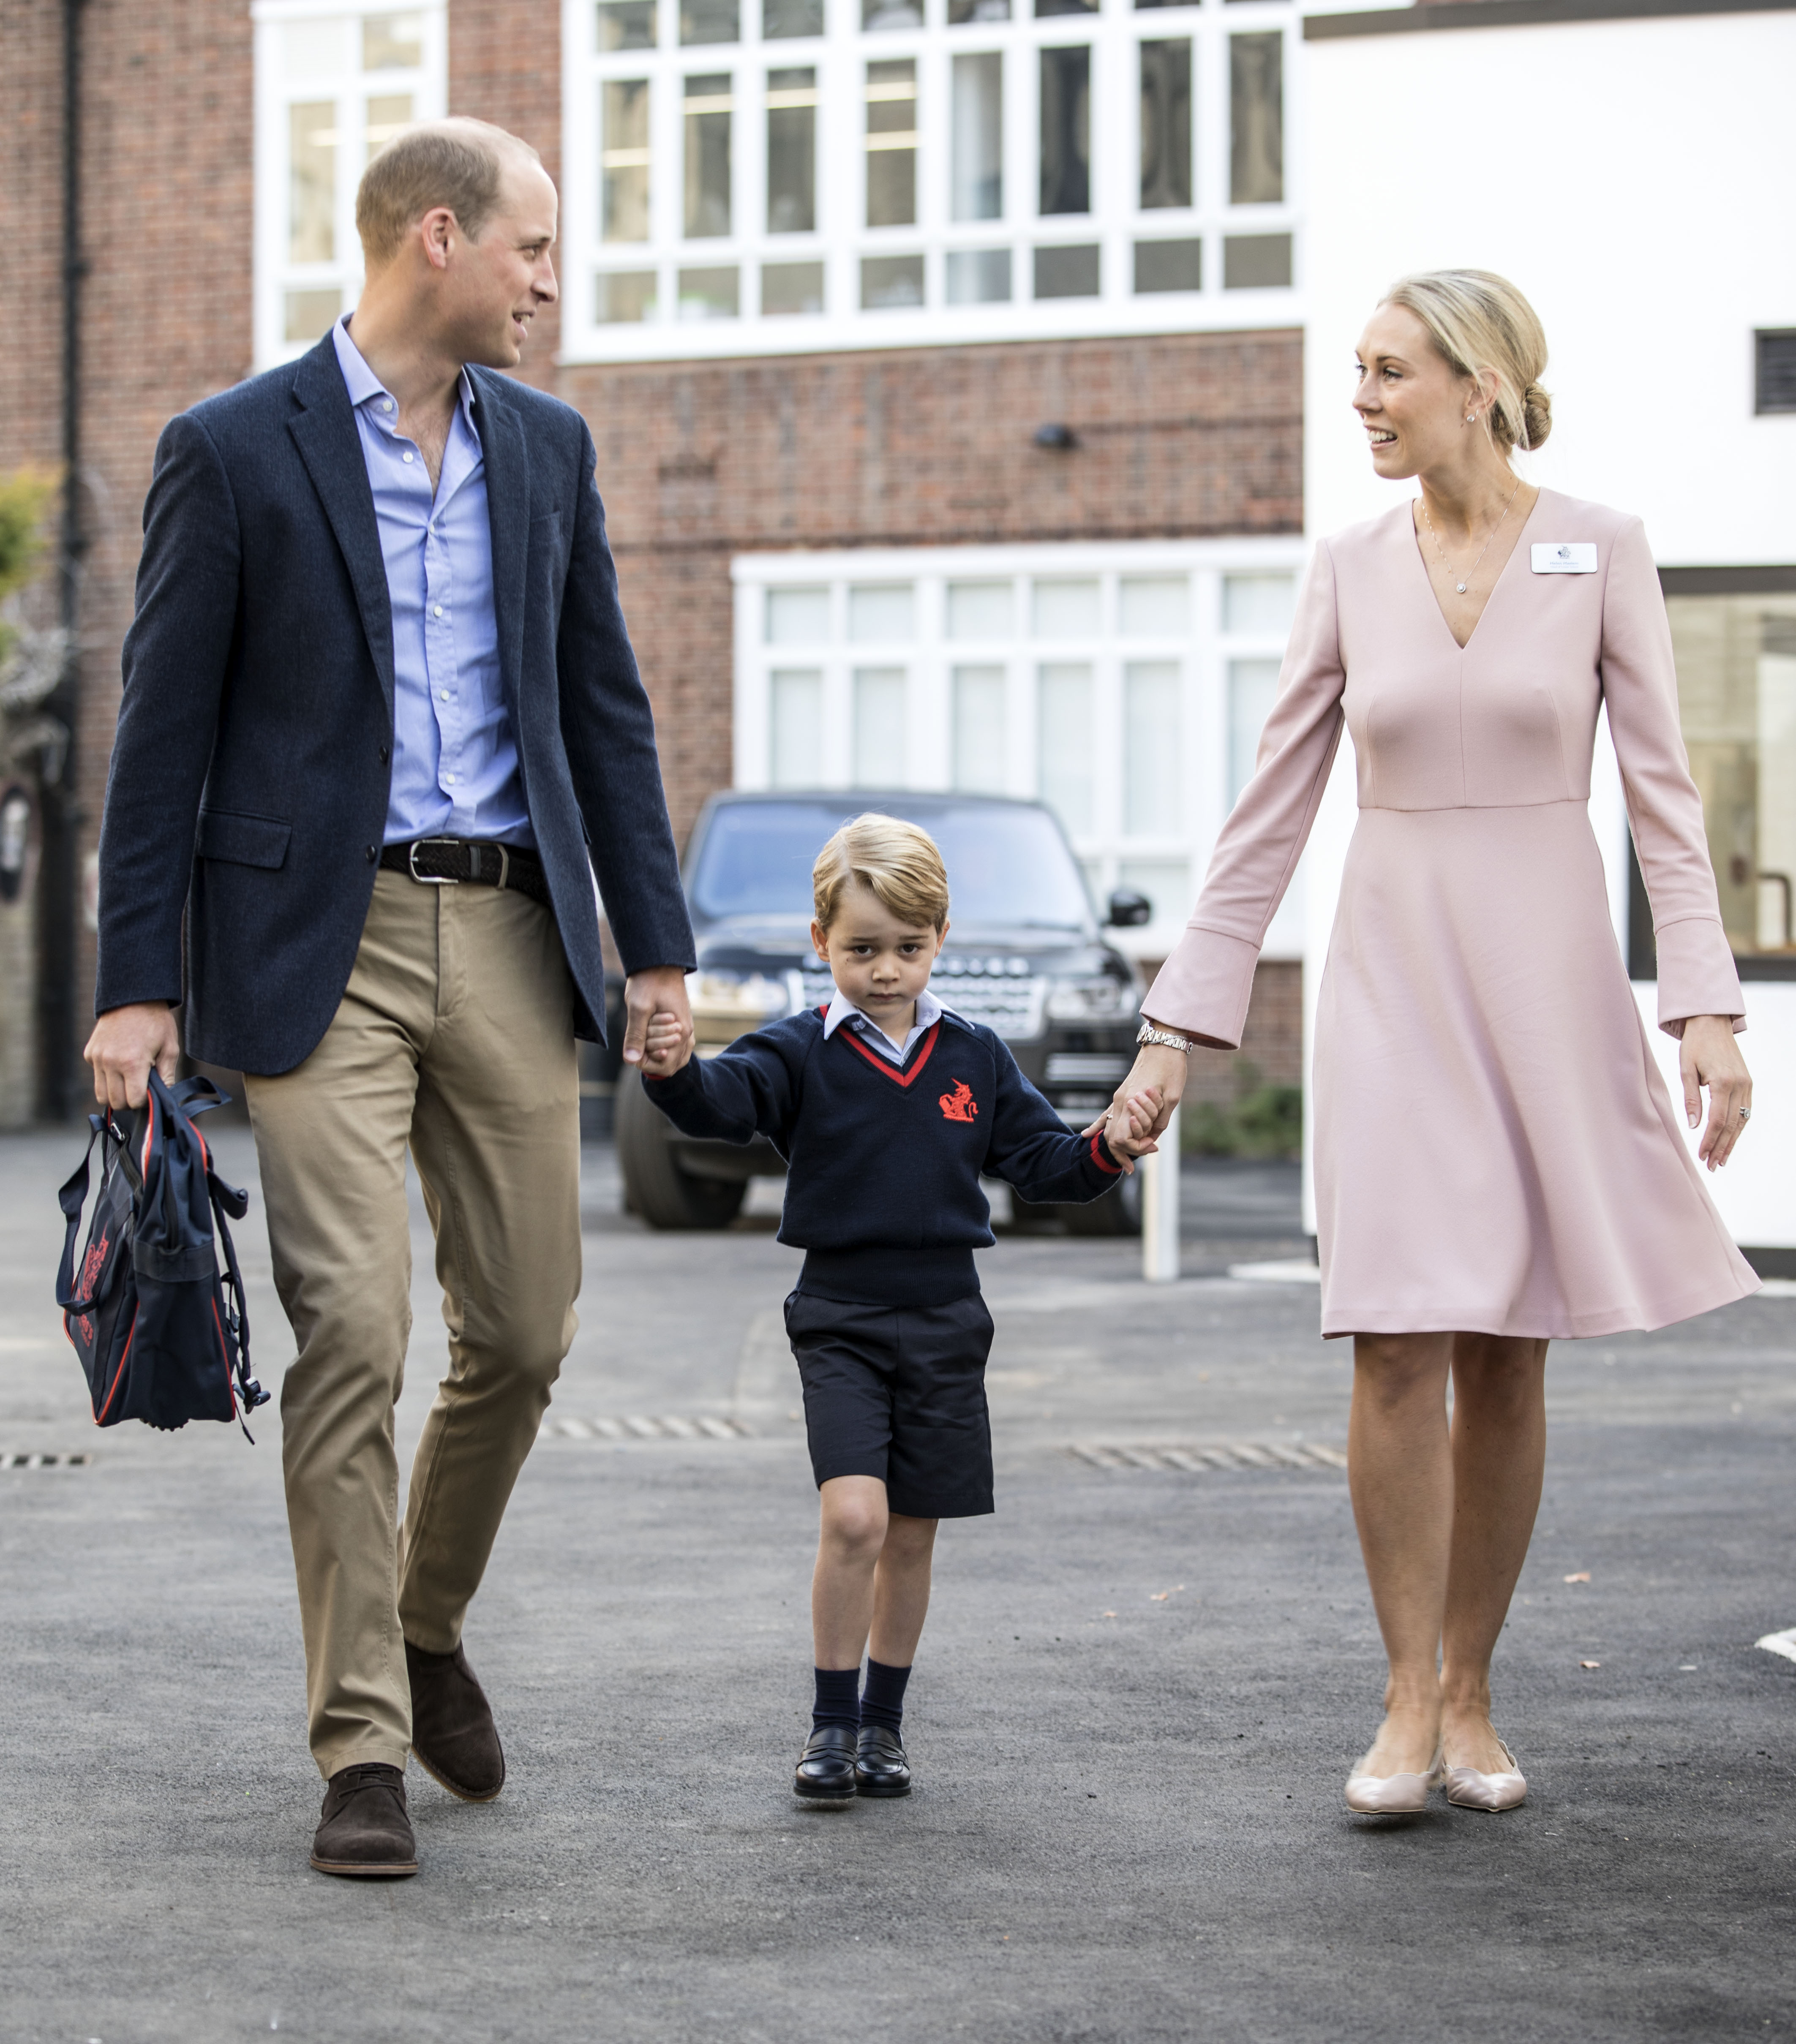 Prince George of Cambridge arrives for his first day of school with his father Prince William, Duke of Cambridge as they are met Head of the lower school Helen Haslem at Thomas's Battersea on September 7, 2017 in London, England